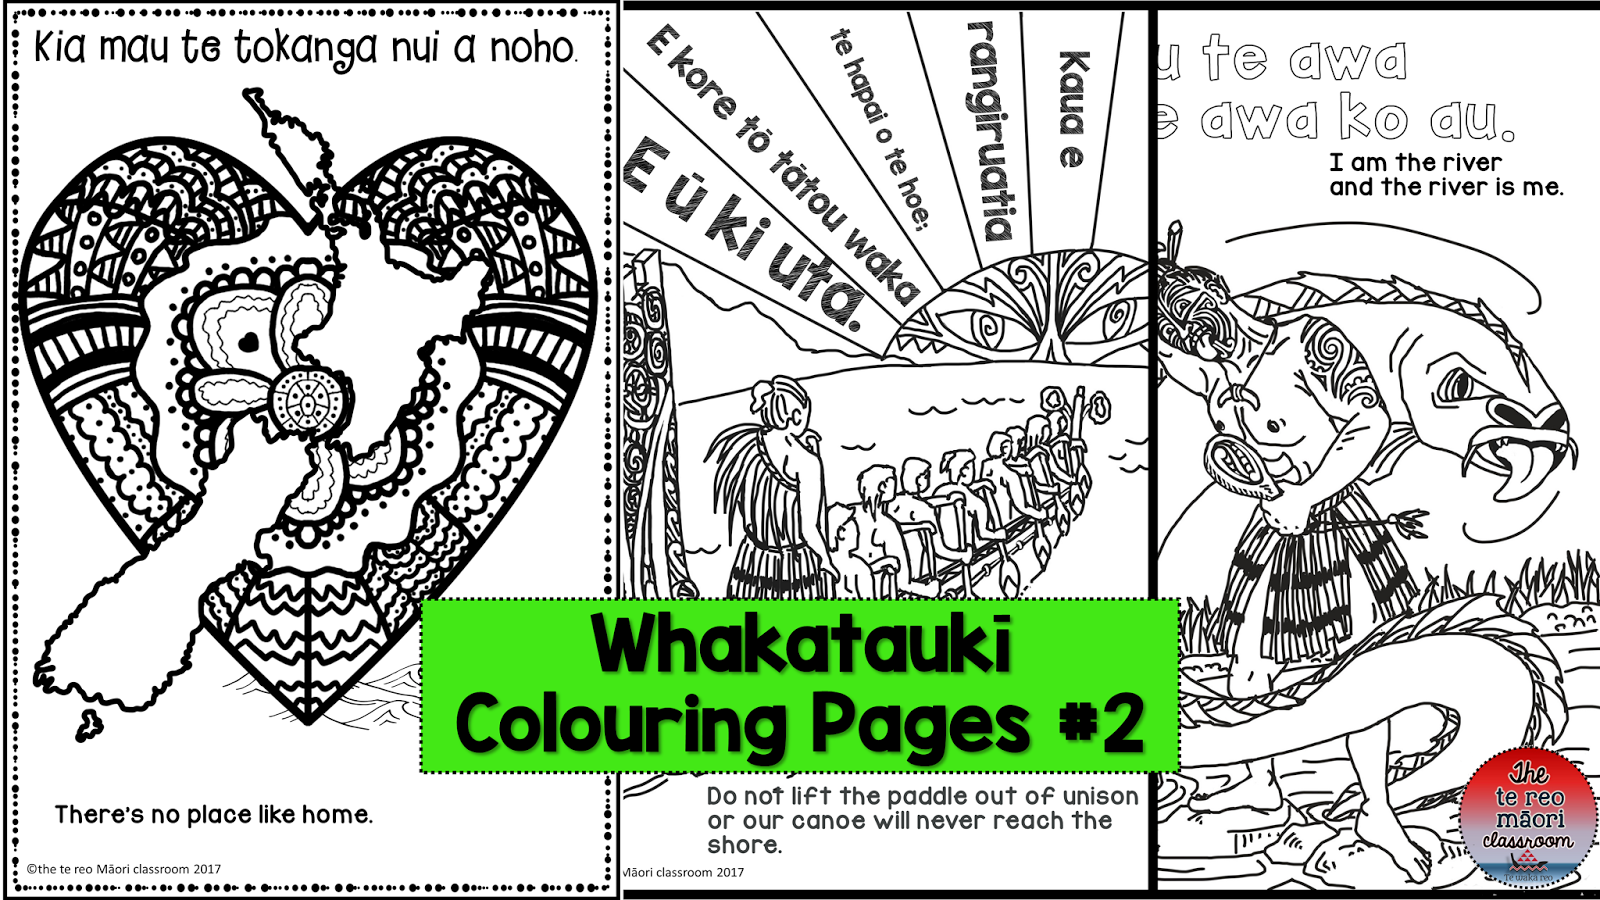 thetereomāoriclassroom: Whakataukii Colouring Pages... the best!